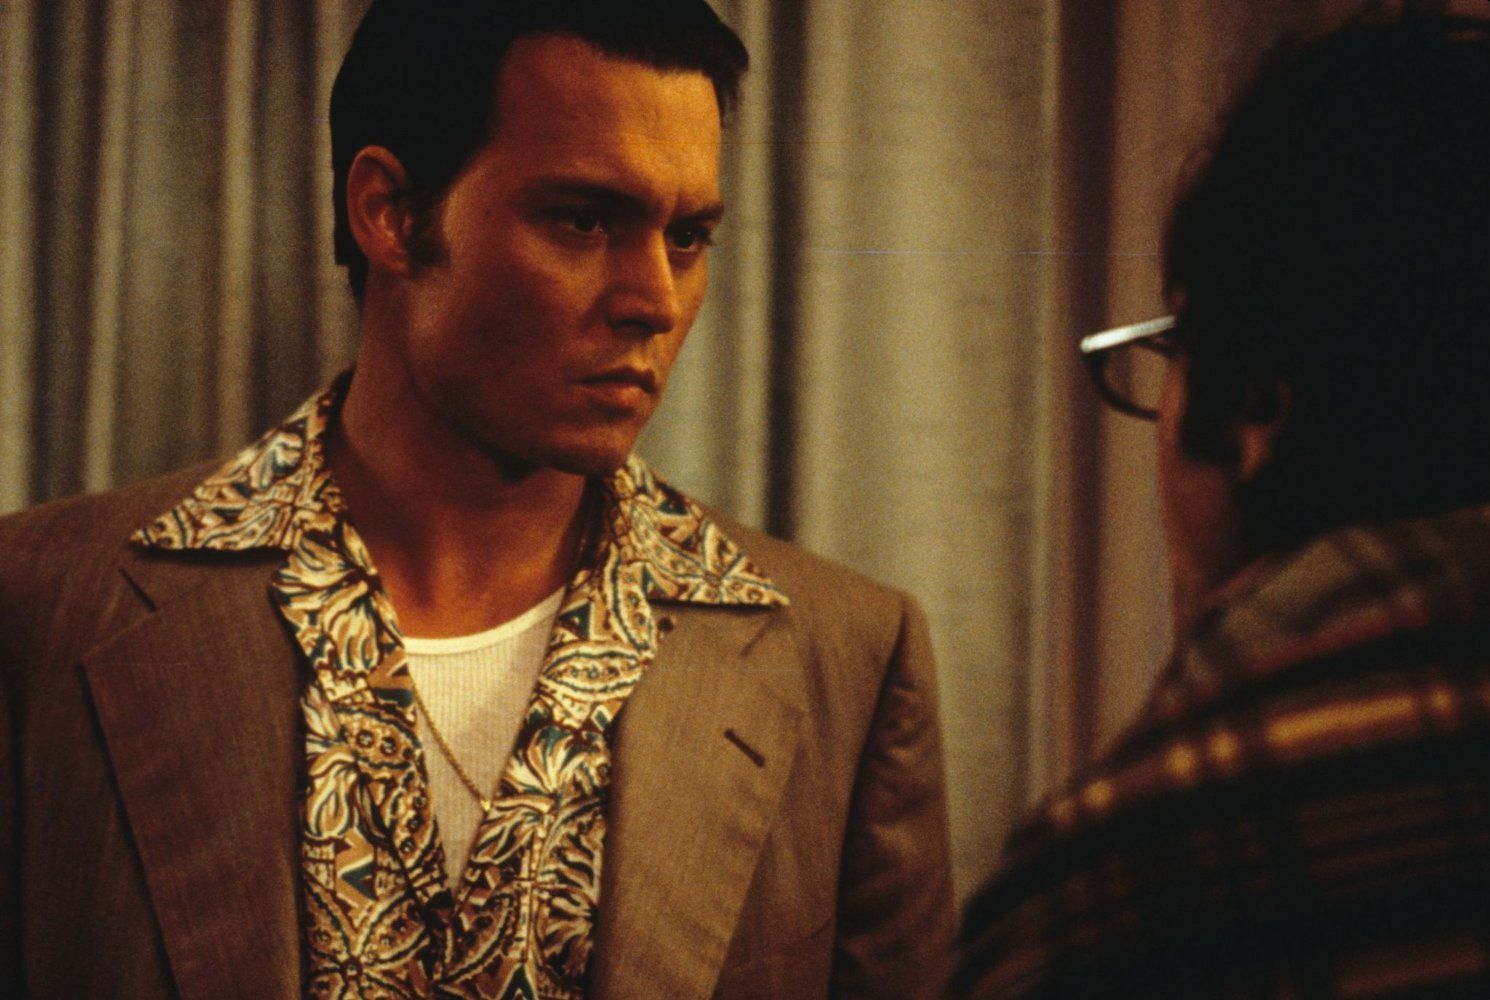 donnie brasco 1997 imdb cine donnie brasco donnie brasco 1997 imdb